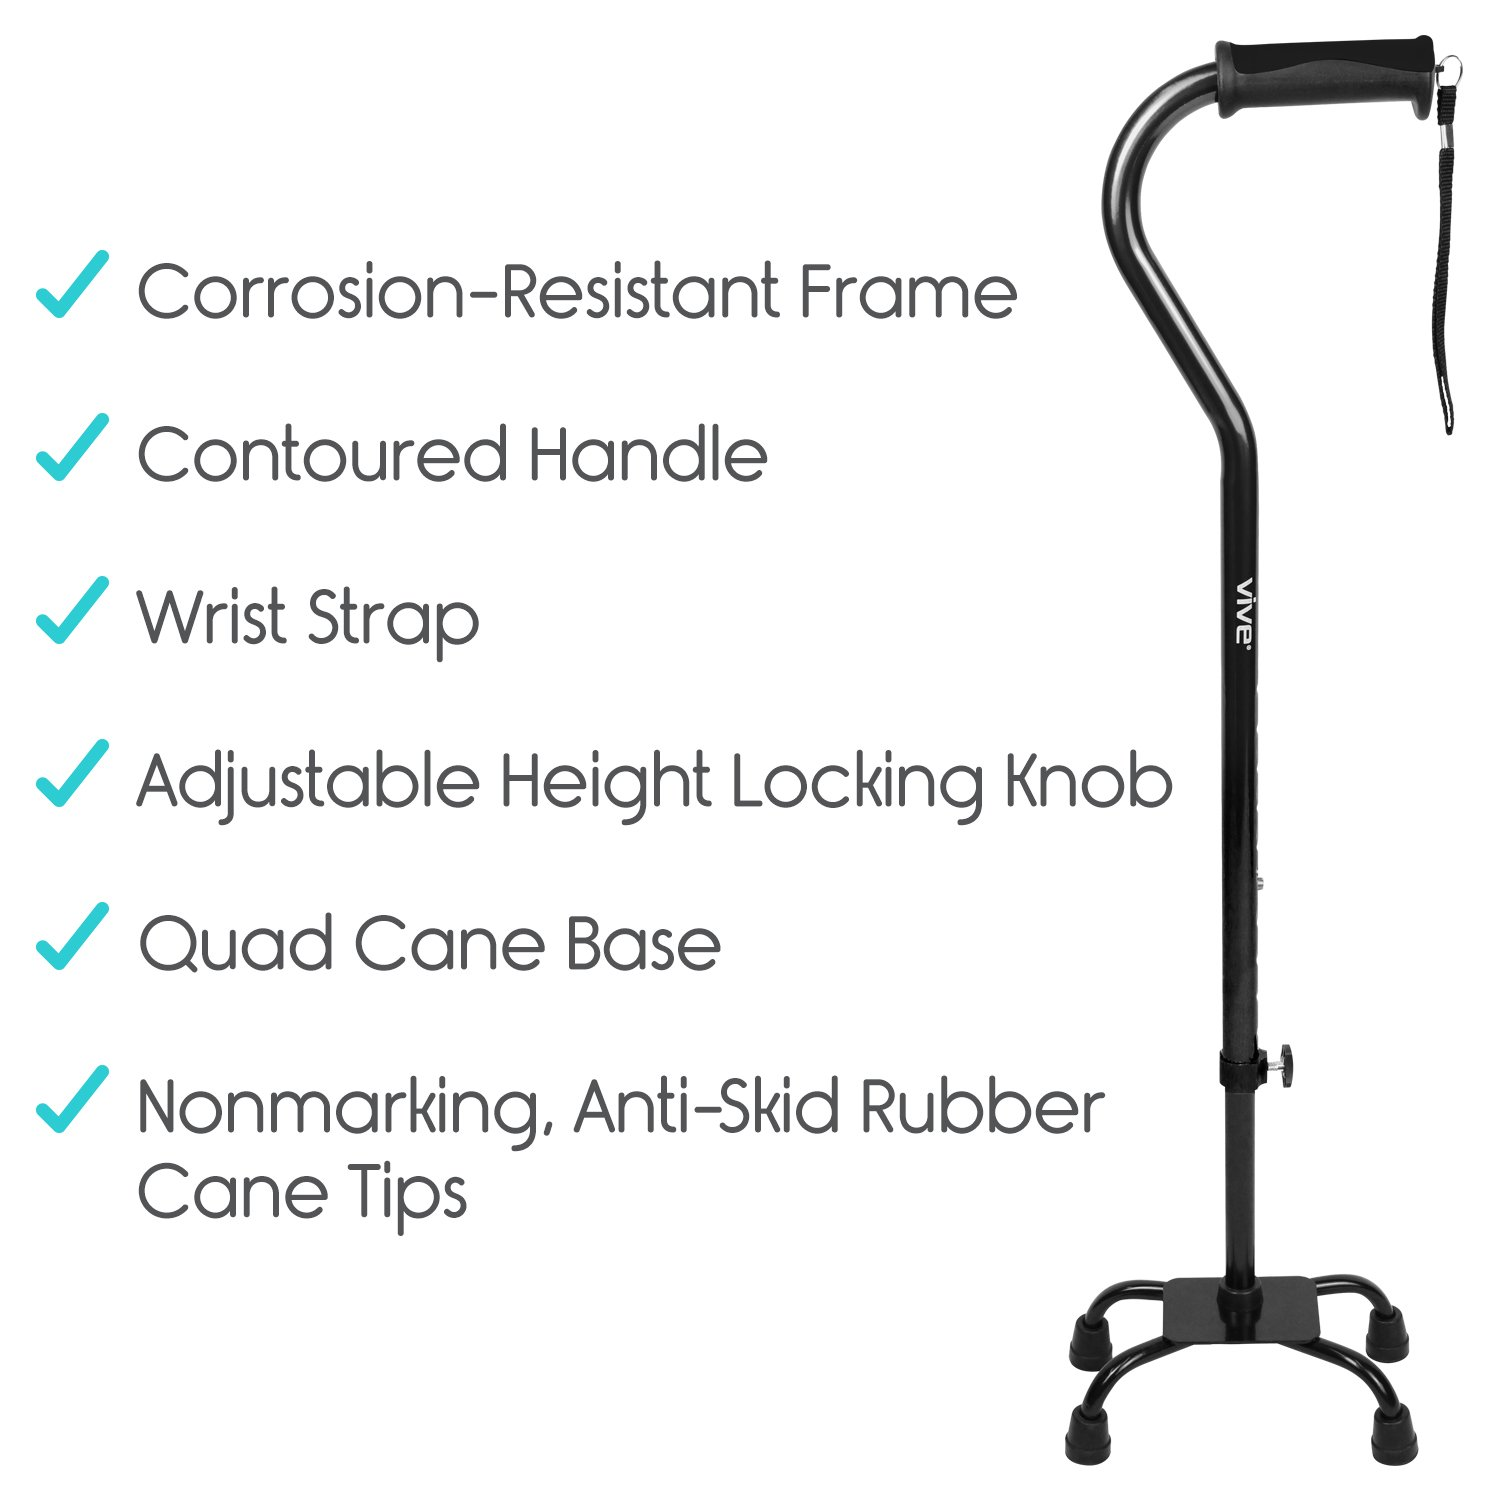 Adjustable Quad Cane by Vive - Lightweight Walking Stick for Men and Women - Walking Staff Can Be Used By Right- or Left-Handed Individuals - Fashionable and Sturdy (Black) by VIVE (Image #9)